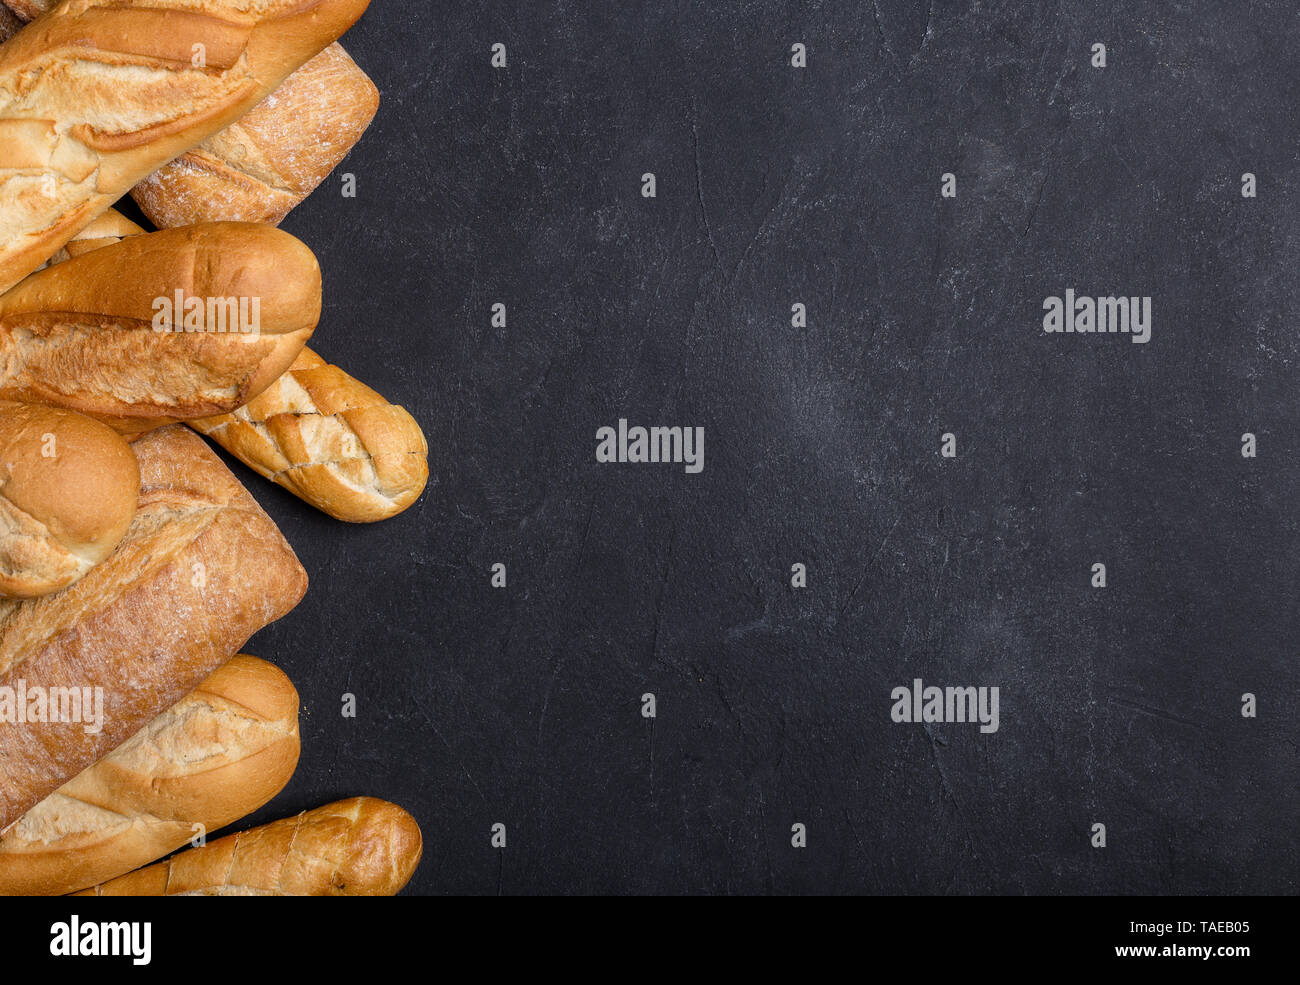 Various crusty bread on black table. Left edge, top view with space for your text. Concept of banner with bread - Stock Image